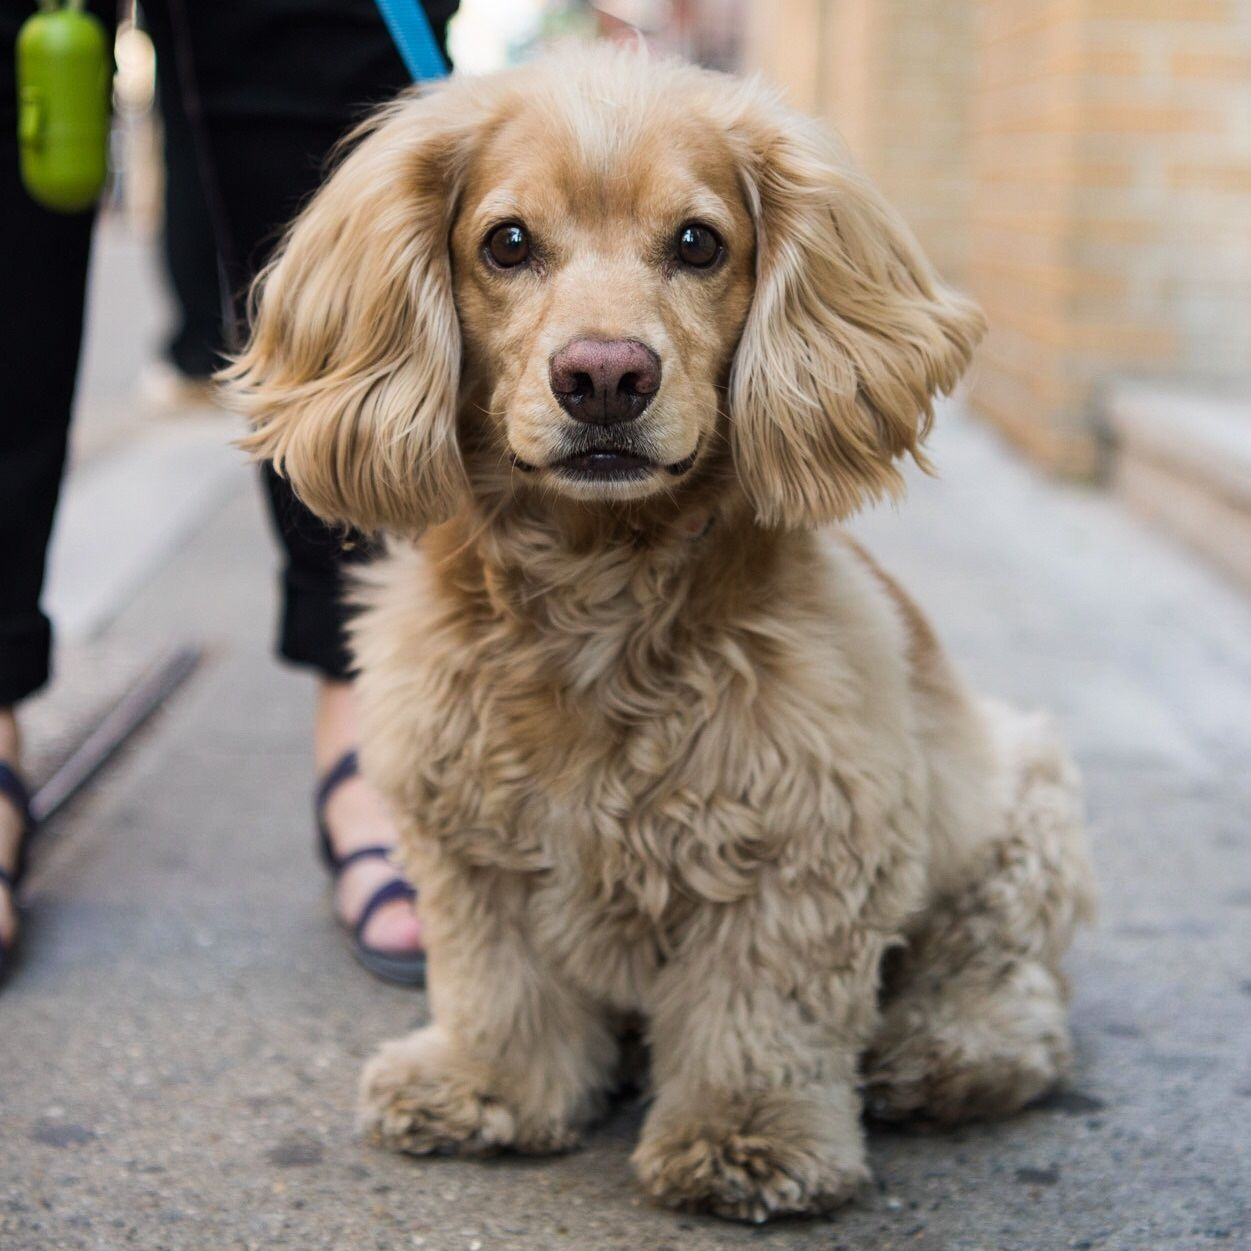 Barry Cocker Spaniel Dachshund Mix 5 Y O Prince West Broadway New York Ny He Can Be Aggressive Da Unusual Dog Breeds Cocker Spaniel Dachshund Mix